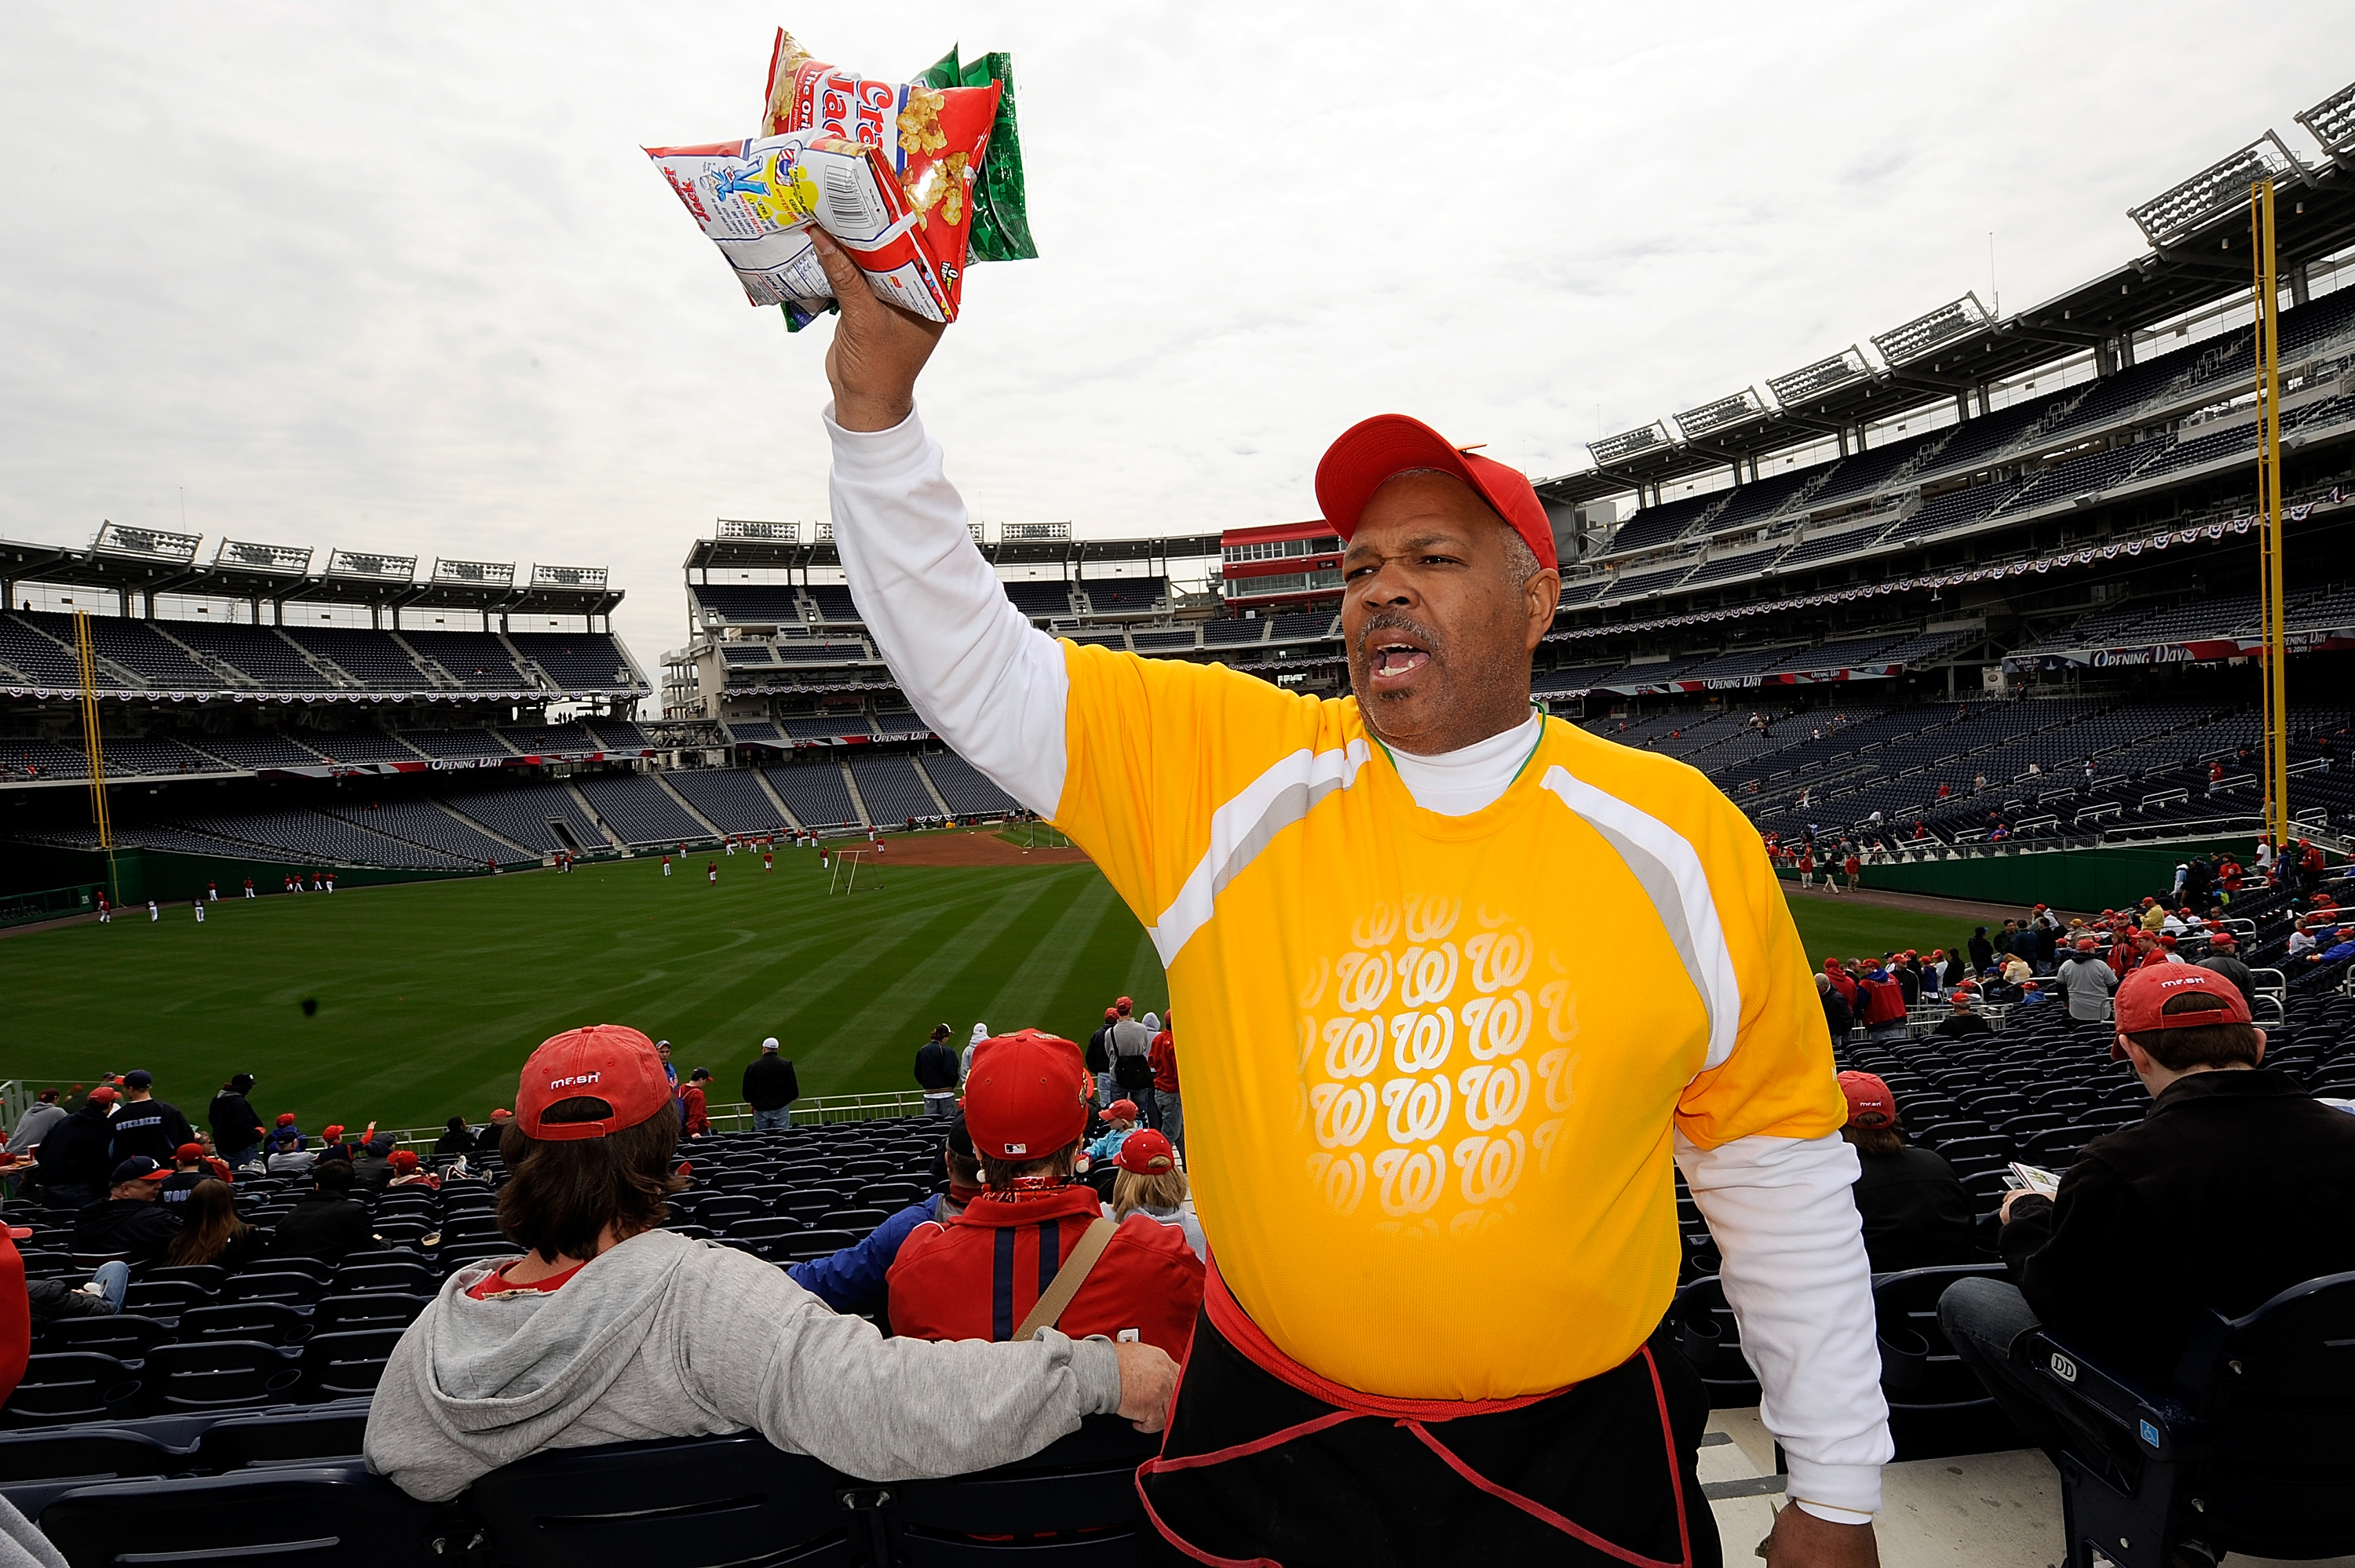 WASHINGTON - APRIL 13:  A vender sells cracker jack before the Washington Nationals home opener against the Philadelphia Phillies at Nationals Park on April 13, 2009 in Washington, DC.  (Photo by Greg Fiume/Getty Images)